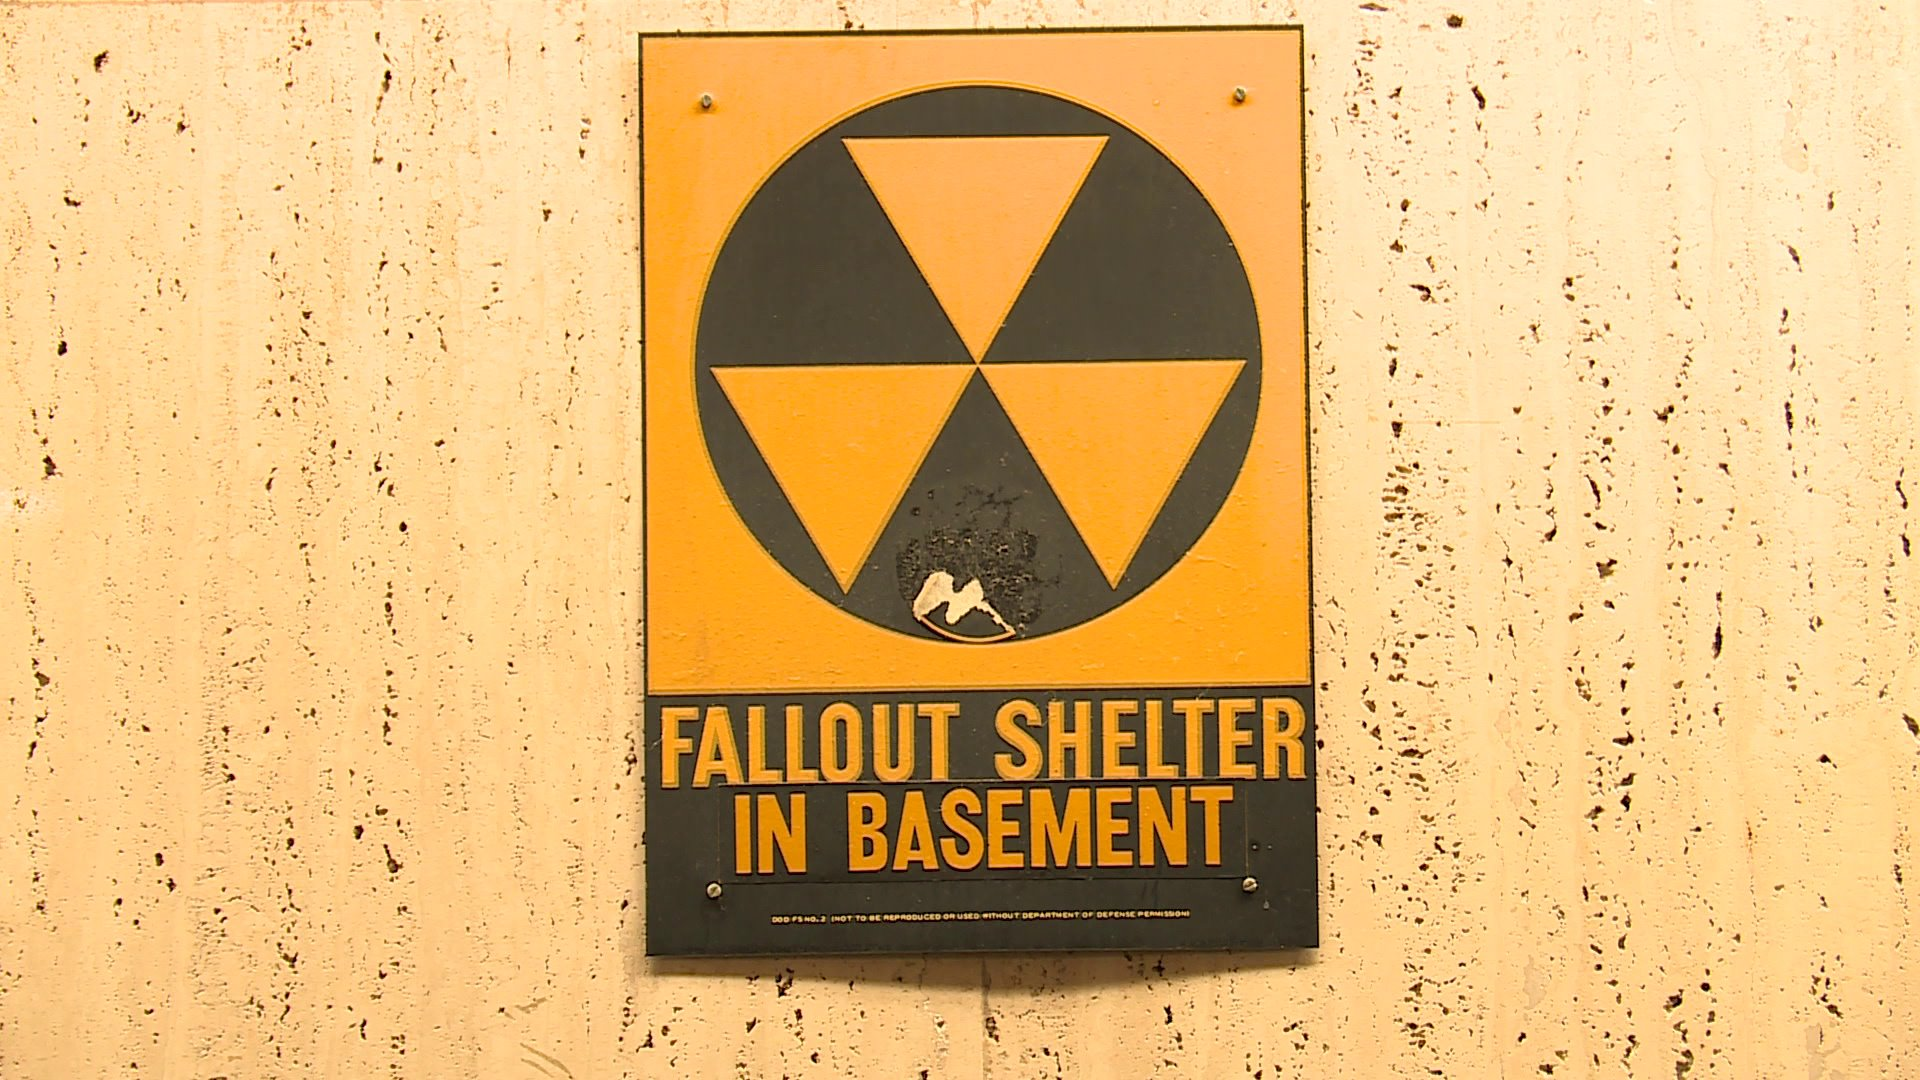 This fallout sign is still posted inside the Madison County Courthouse.